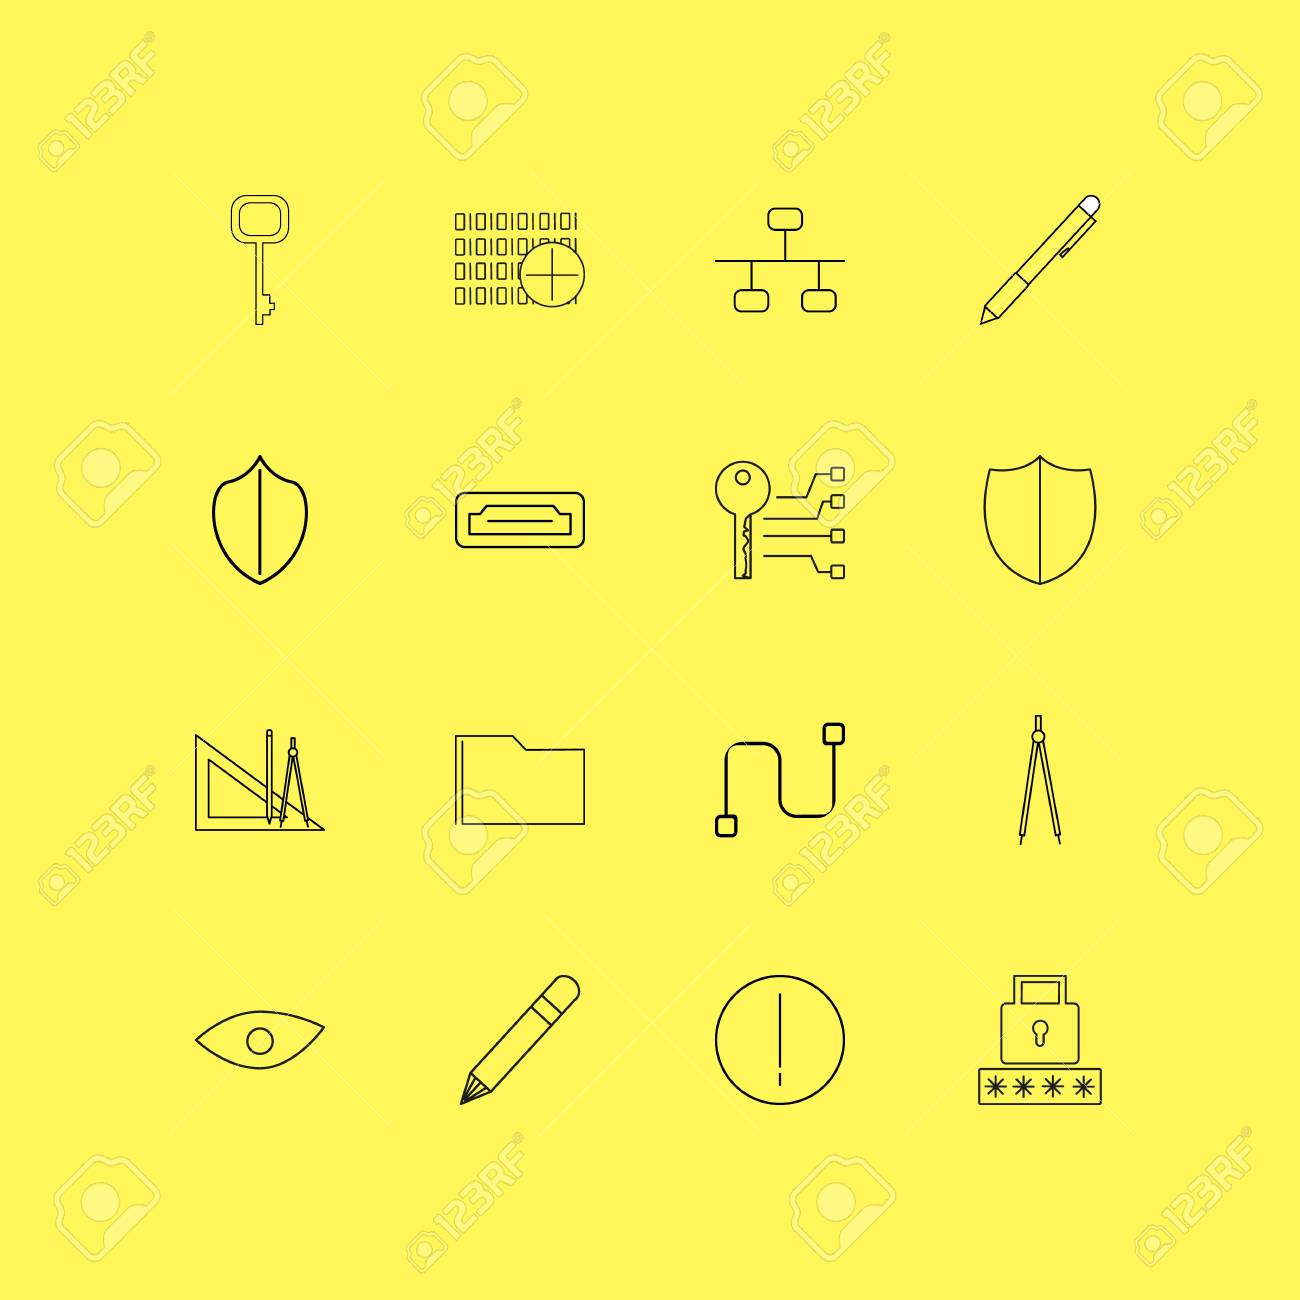 Internet Technologies linear icon set  Simple outline icons